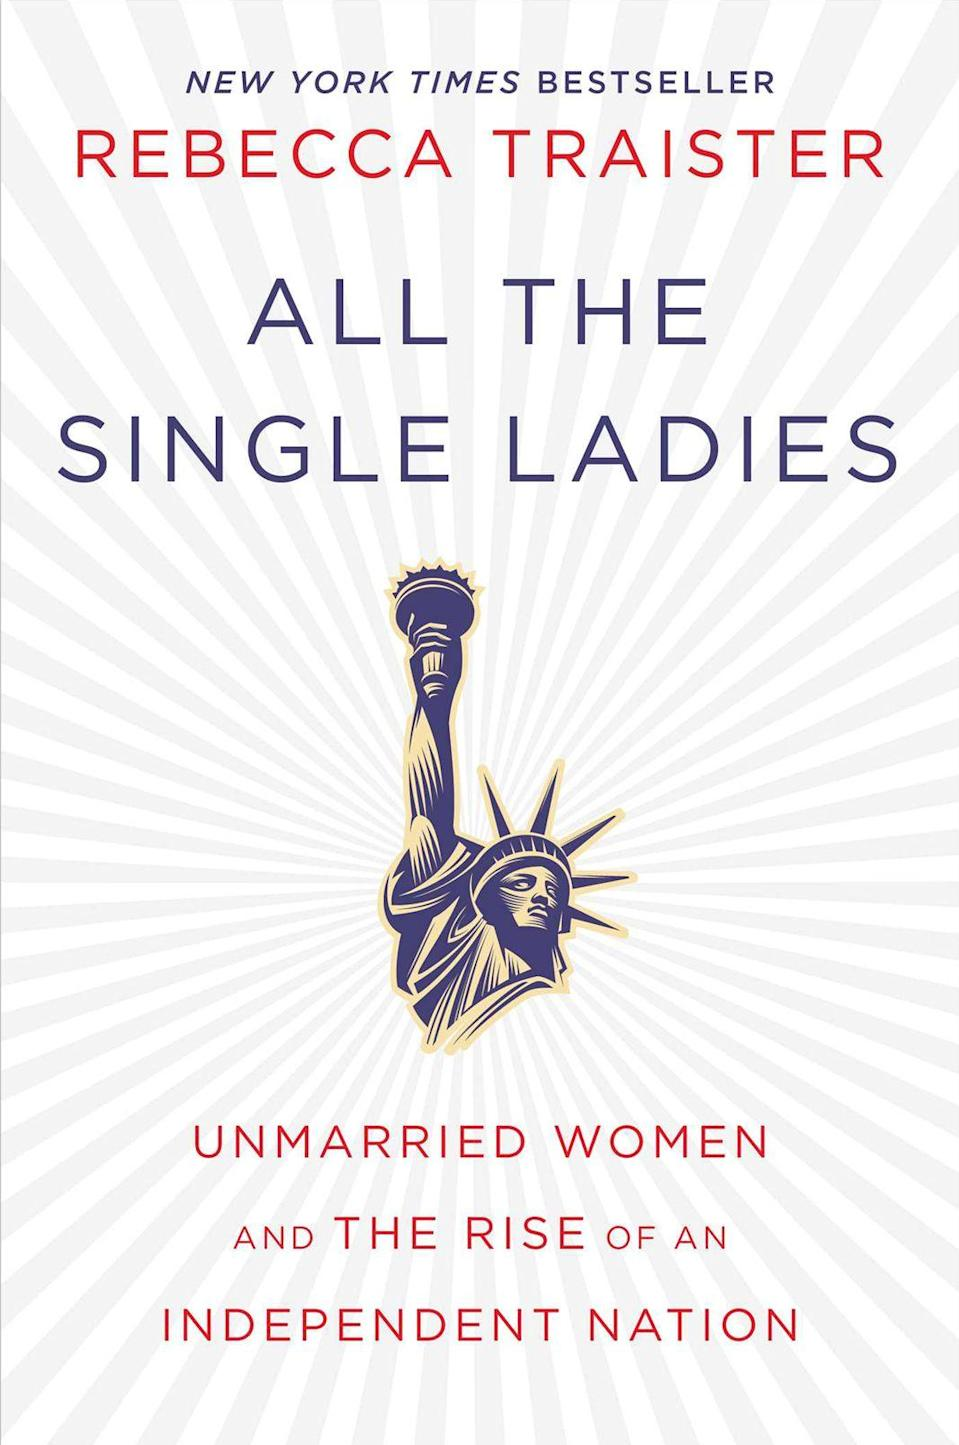 """<p><strong><em>All The Single Ladies</em></strong></p><p>By Rebecca Traister</p><p>You don't need us to tell you that single women are a rising political force. You might be one of the <a href=""""http://www.refinery29.com/2016/03/104893/all-the-single-ladies-rebecca-traister-book"""" rel=""""nofollow noopener"""" target=""""_blank"""" data-ylk=""""slk:increasing number of unmarried women enjoying an """"independent female adulthood"""""""" class=""""link rapid-noclick-resp"""">increasing number of unmarried women enjoying an """"independent female adulthood""""</a>, who are working to shape the future of the U.S. and to ensure it works for them. American author and journalist Rebecca Traister combines history, reportage and personal memoir to suggest that unmarried women are re-writing what it means to put a ring on it.</p>"""